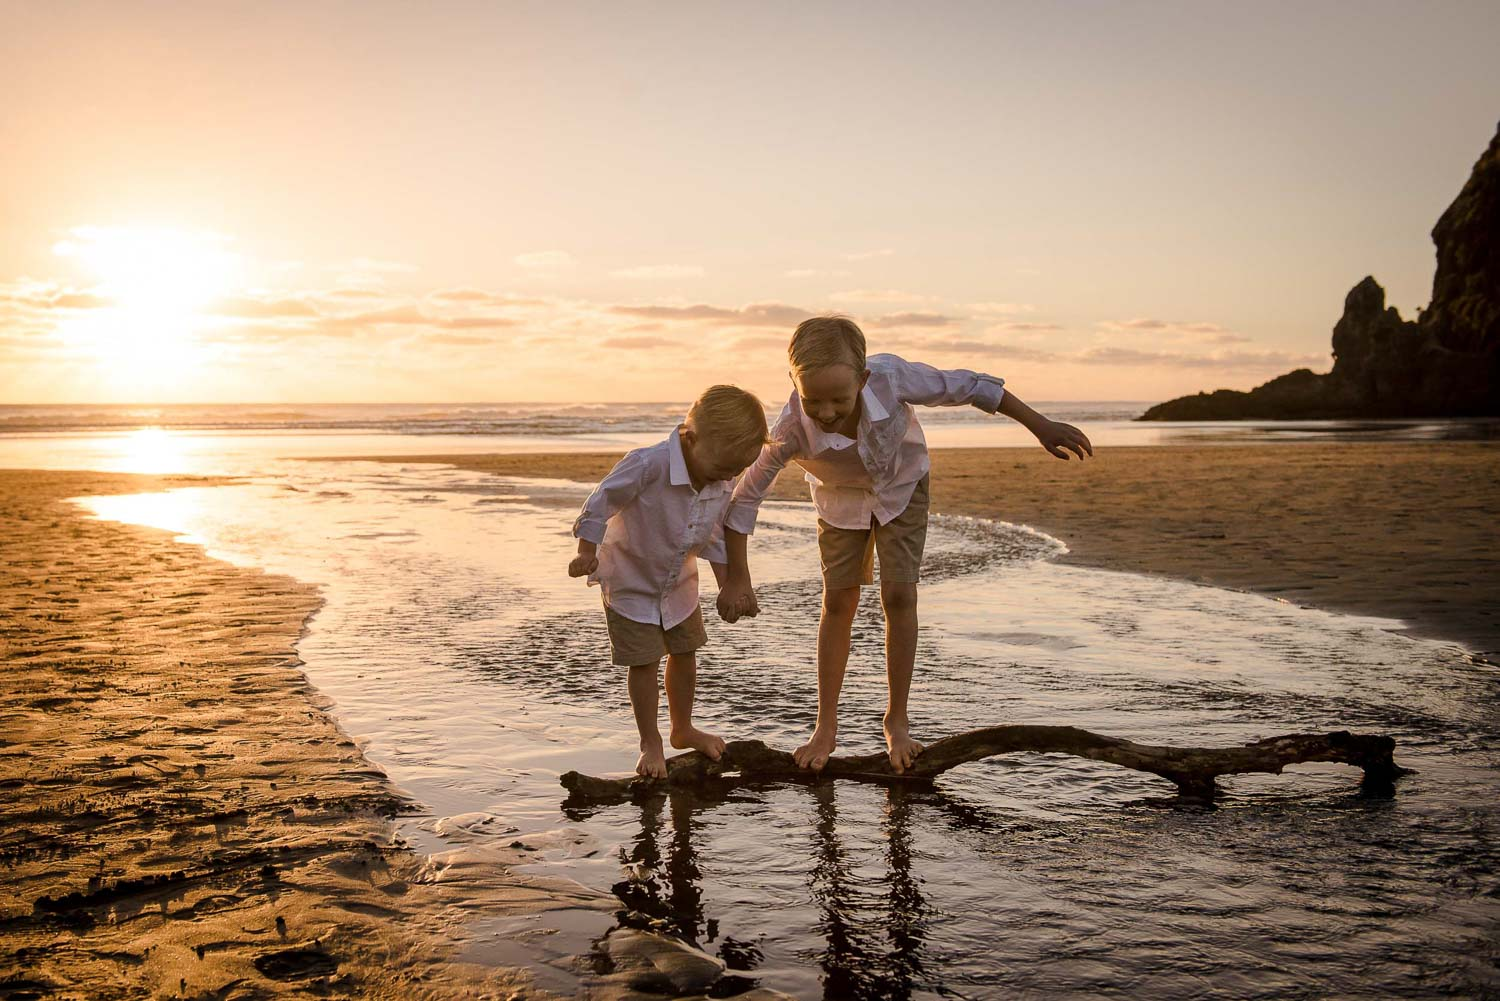 children at beach photography by auckland photographer siobhan kelly photography